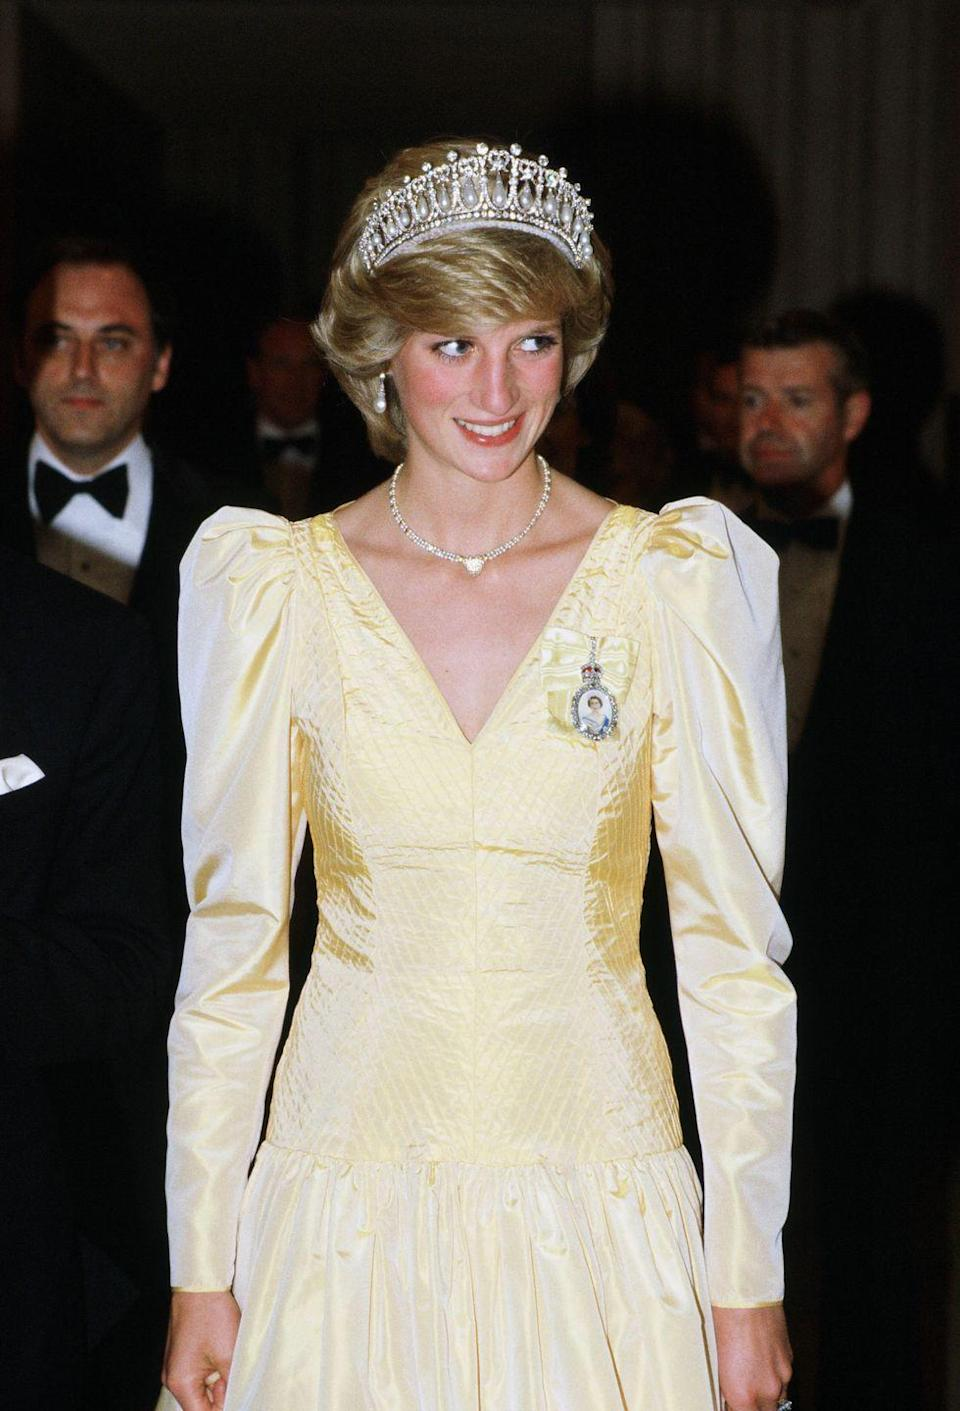 <p>In a yellow satin dress, the pearl-and-diamond Cambridge Tiara, and a heart-shaped necklace given to her by Prince Charles after the birth of their first son, while attending a banquet in Canada.</p>